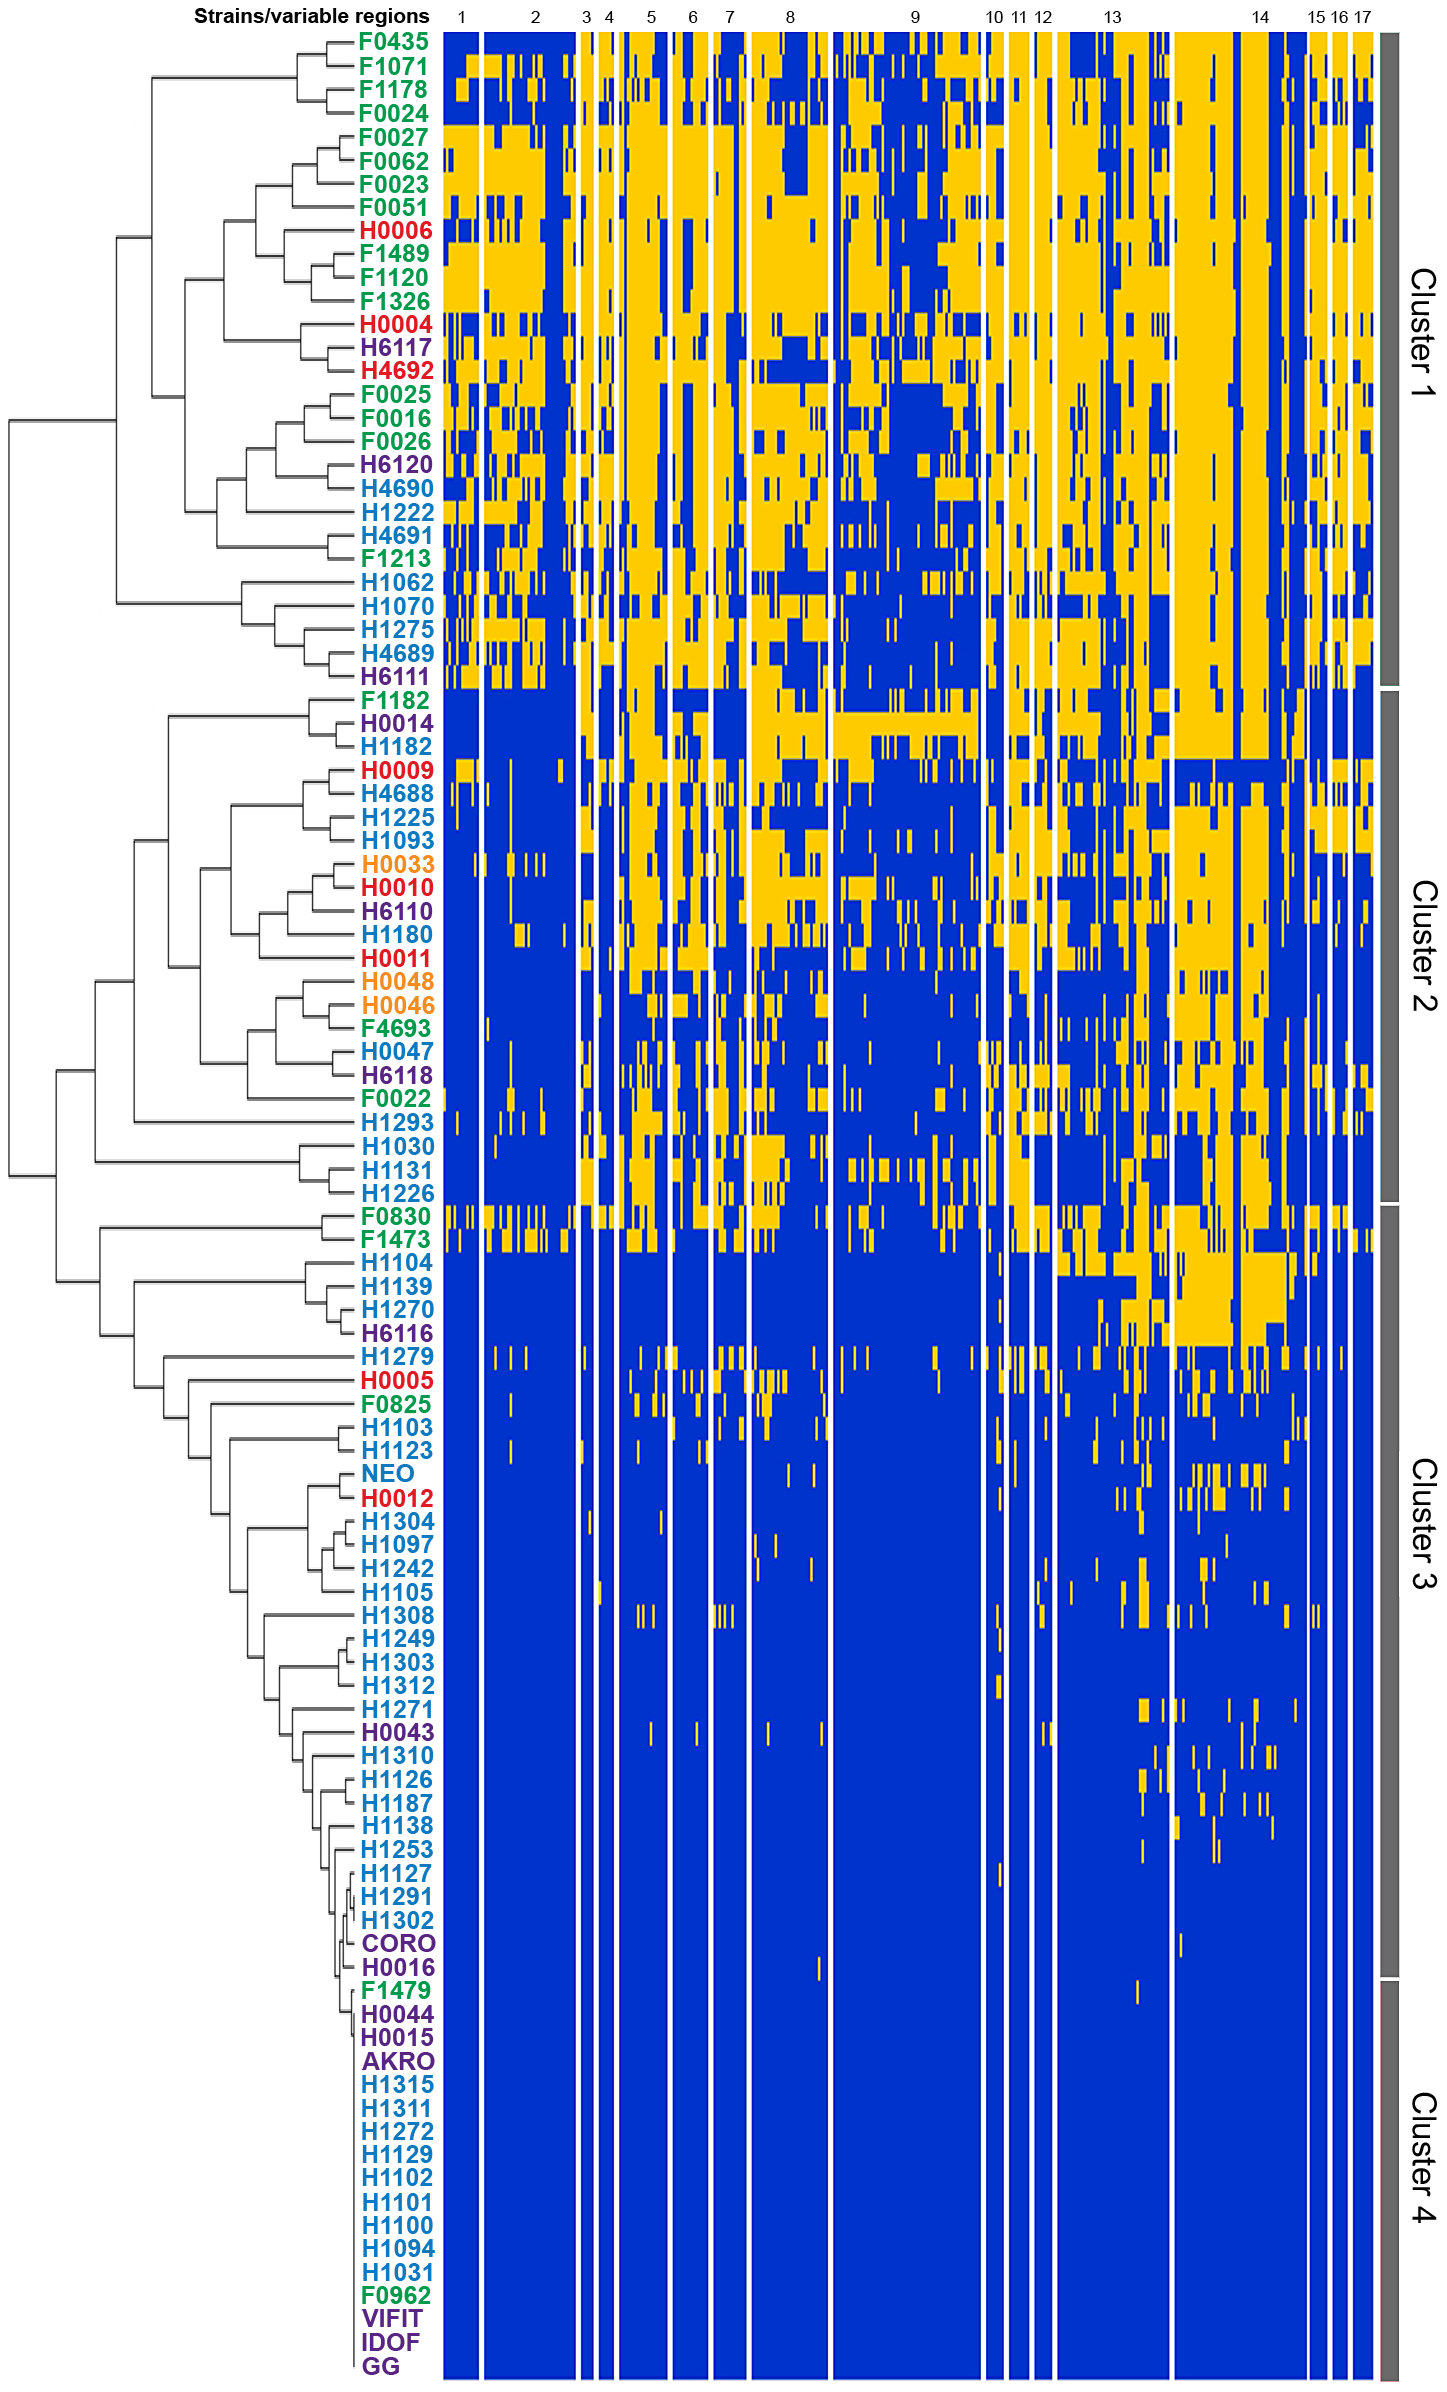 Analysis of genome diversity in <i>L. rhamnosus</i> by mapped SOLiD sequencing.